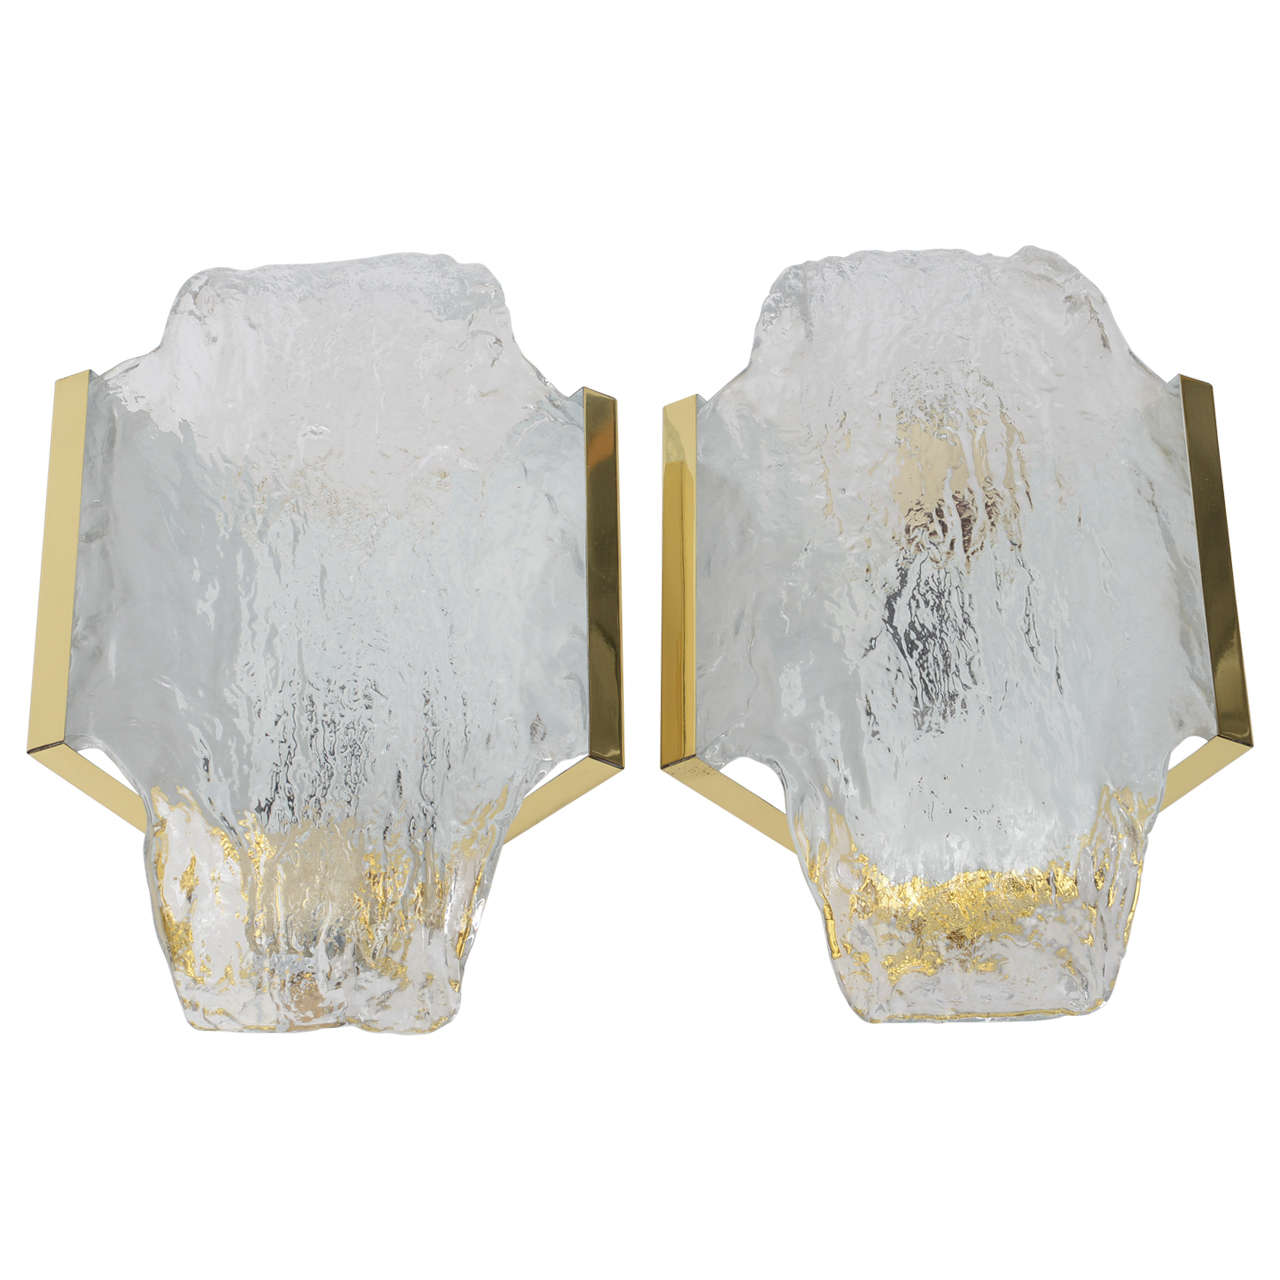 Pair of 1960s Italian Brass and Murano Glass Wall Sconces by Mazzega